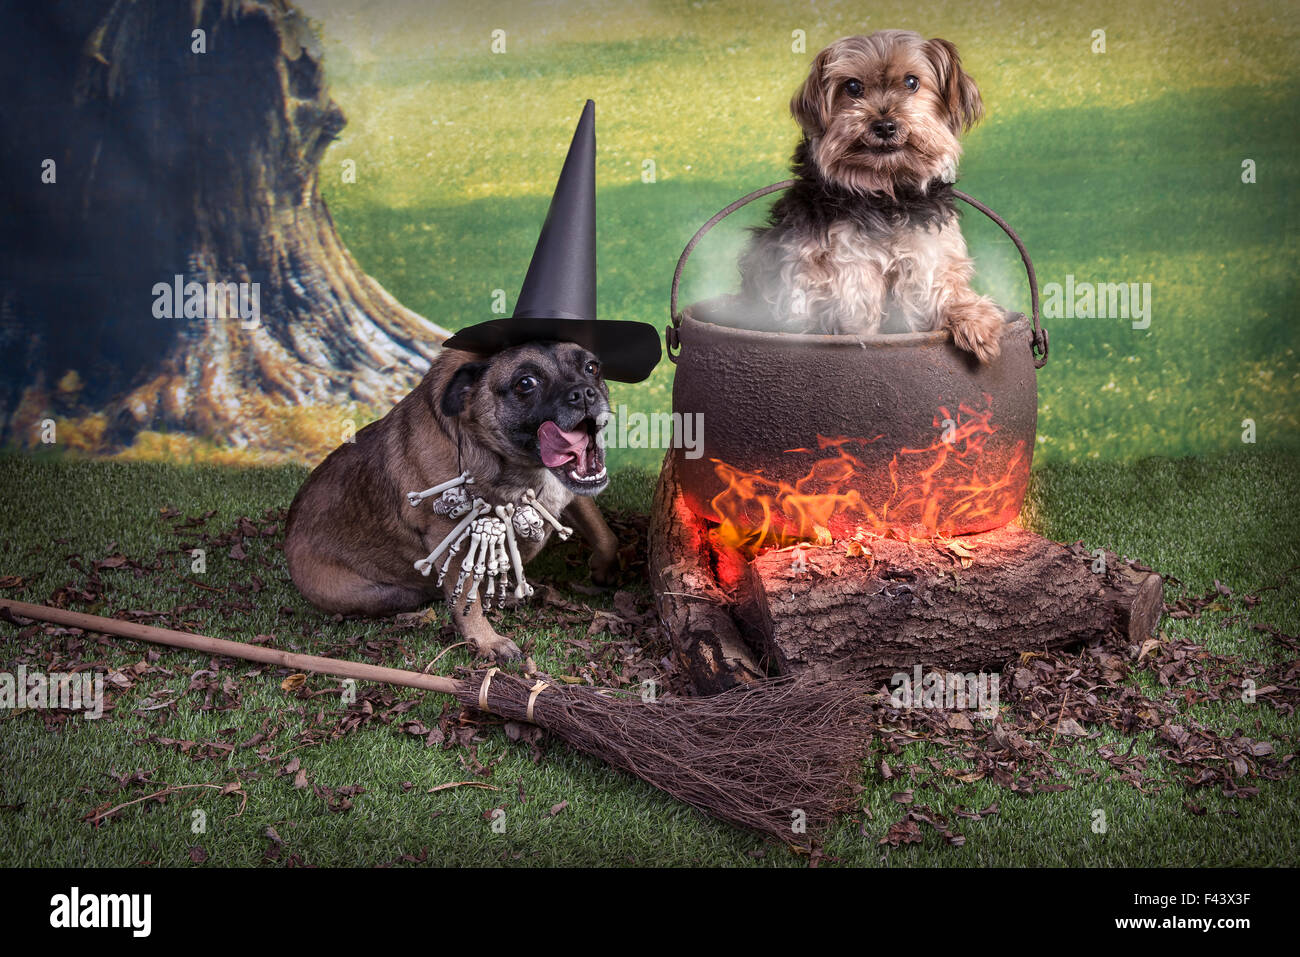 Comical Halloween image of two dogs, one as a witch and one in the cooking pot  filter added to make image softer - Stock Image